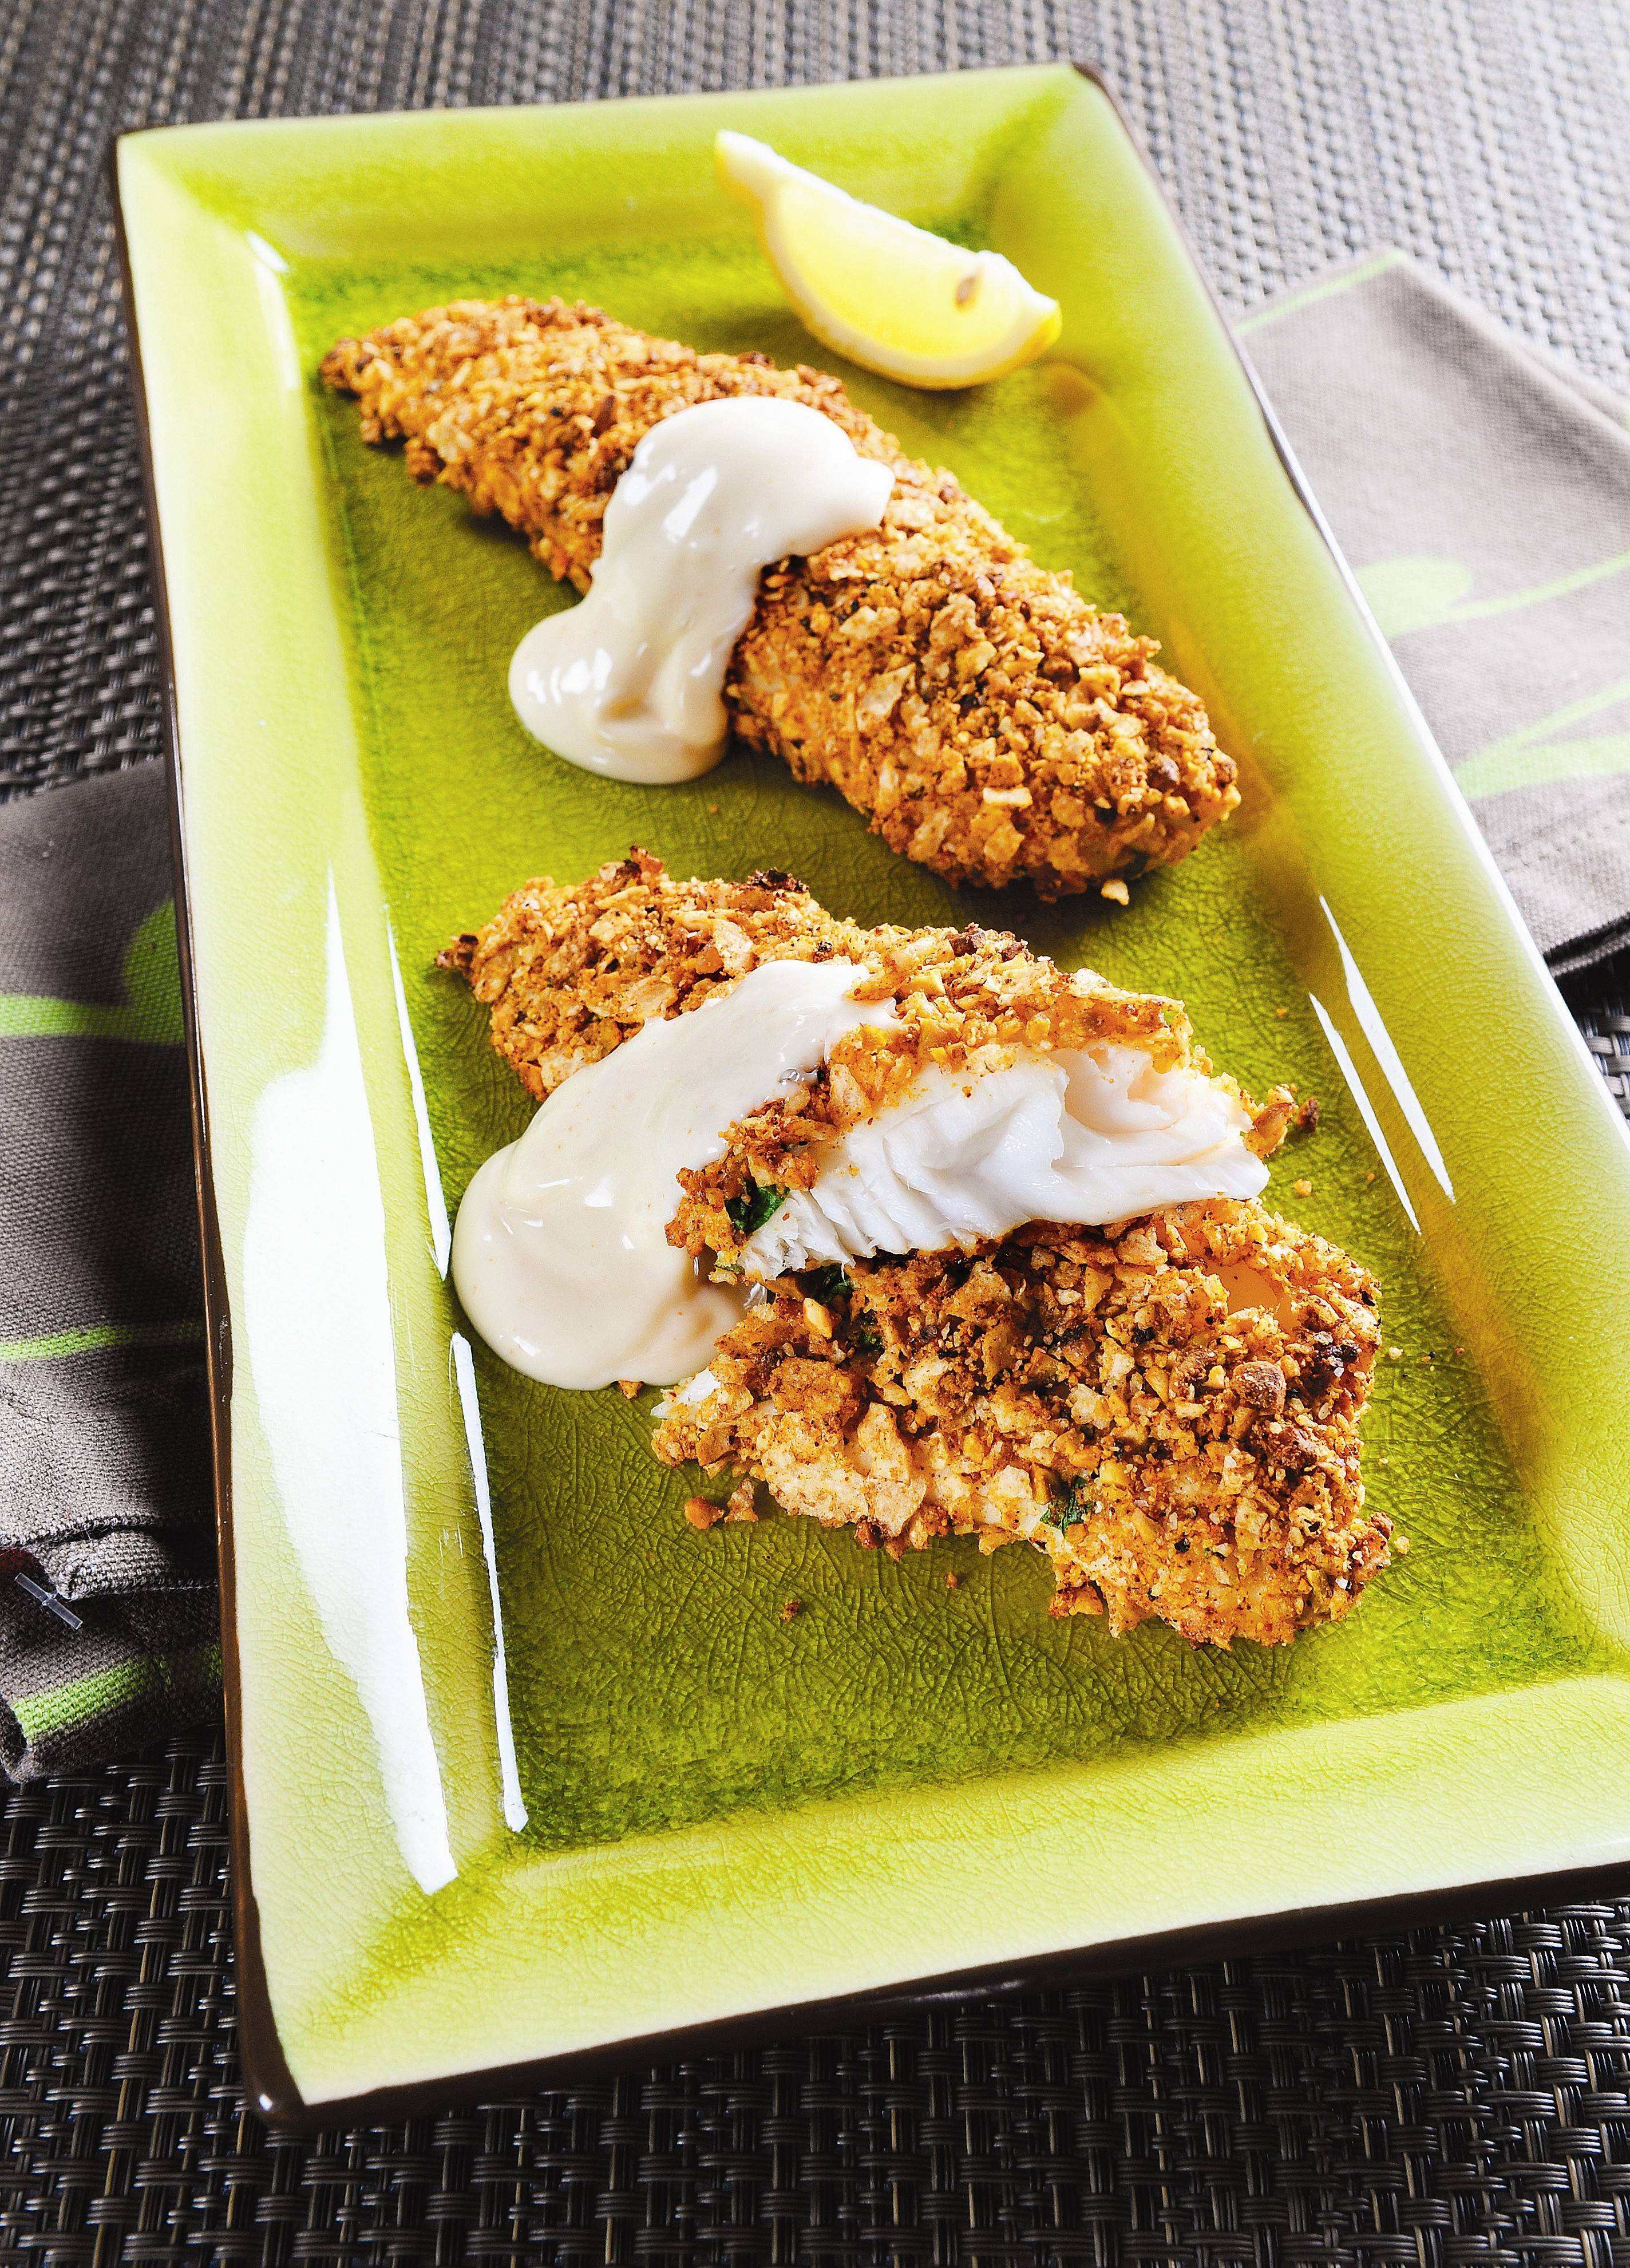 A little Dijon mustard goes a long way in adding flavor to nut-crusted tilapia. The dish can be made with other varieties of domestic, sustainable white fish as well.